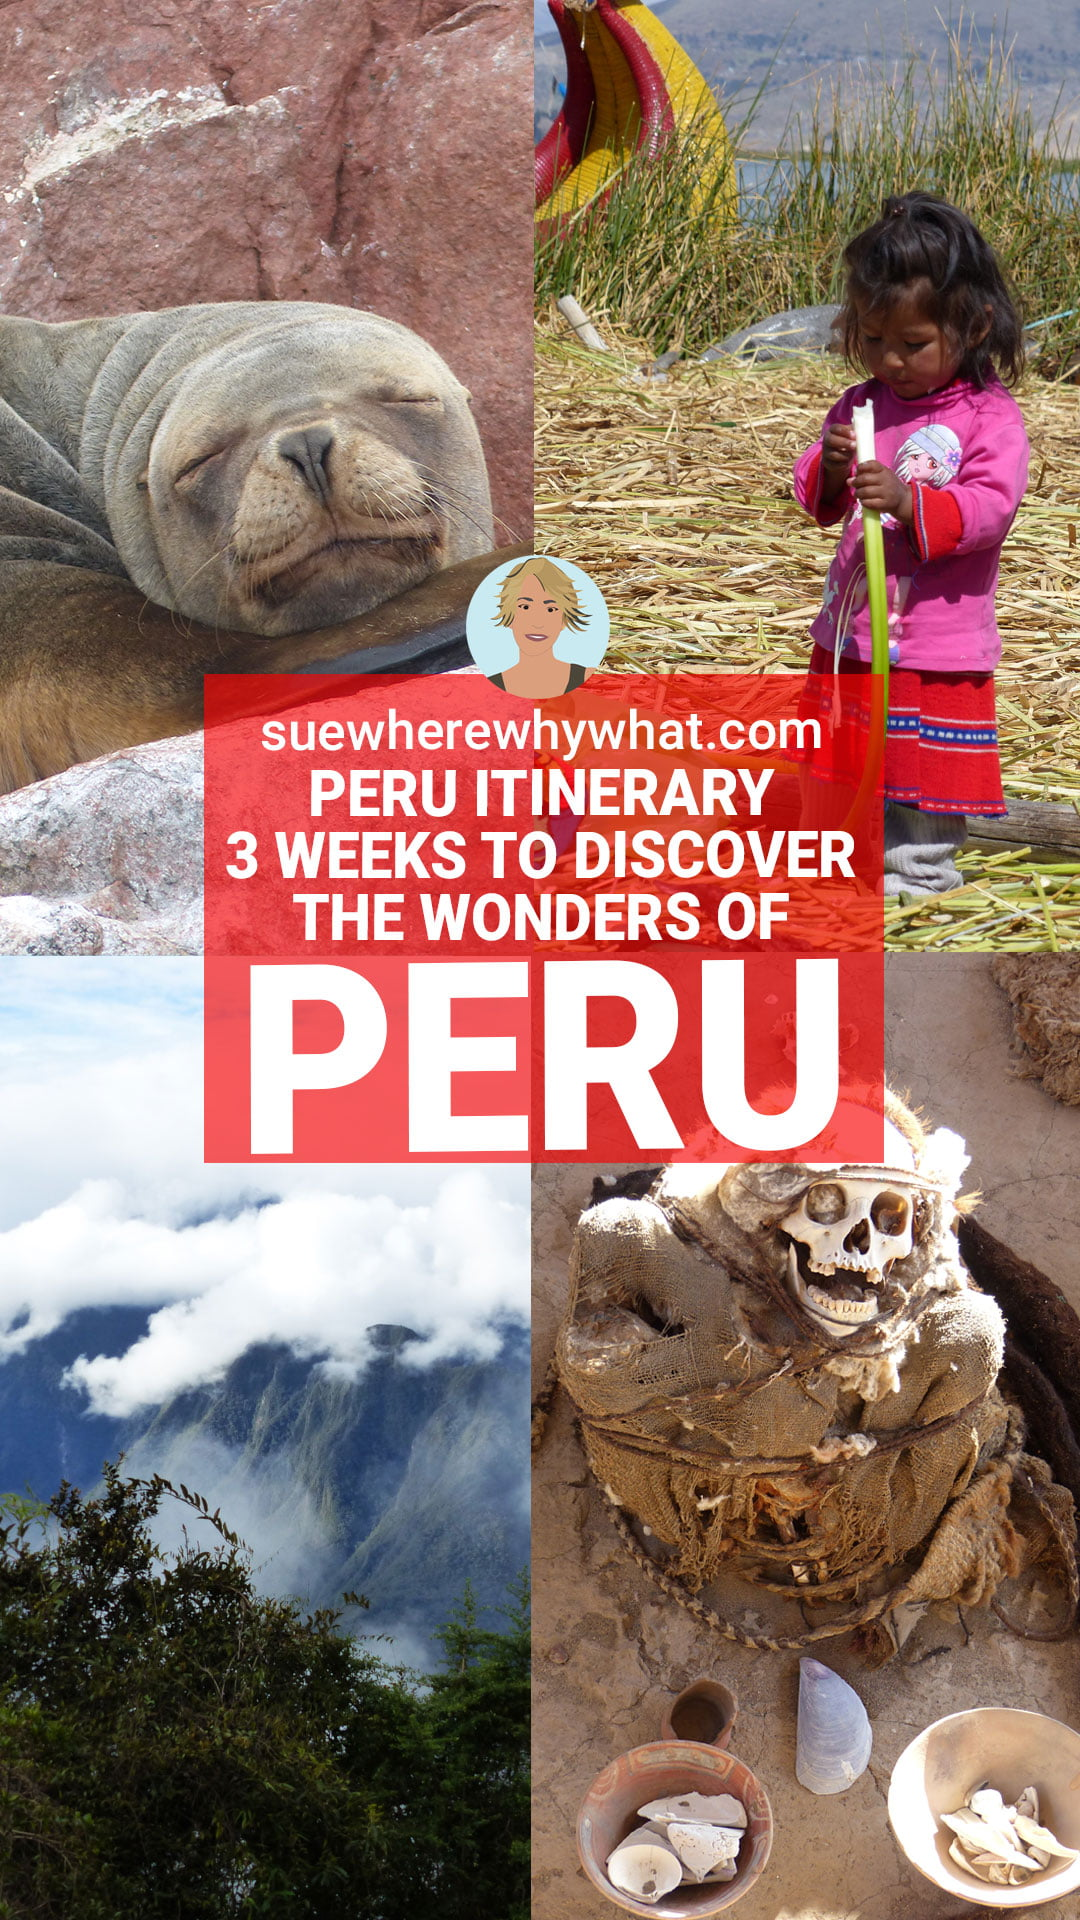 Peru Itinerary – 3 Weeks to Discover the Wonders of Peru